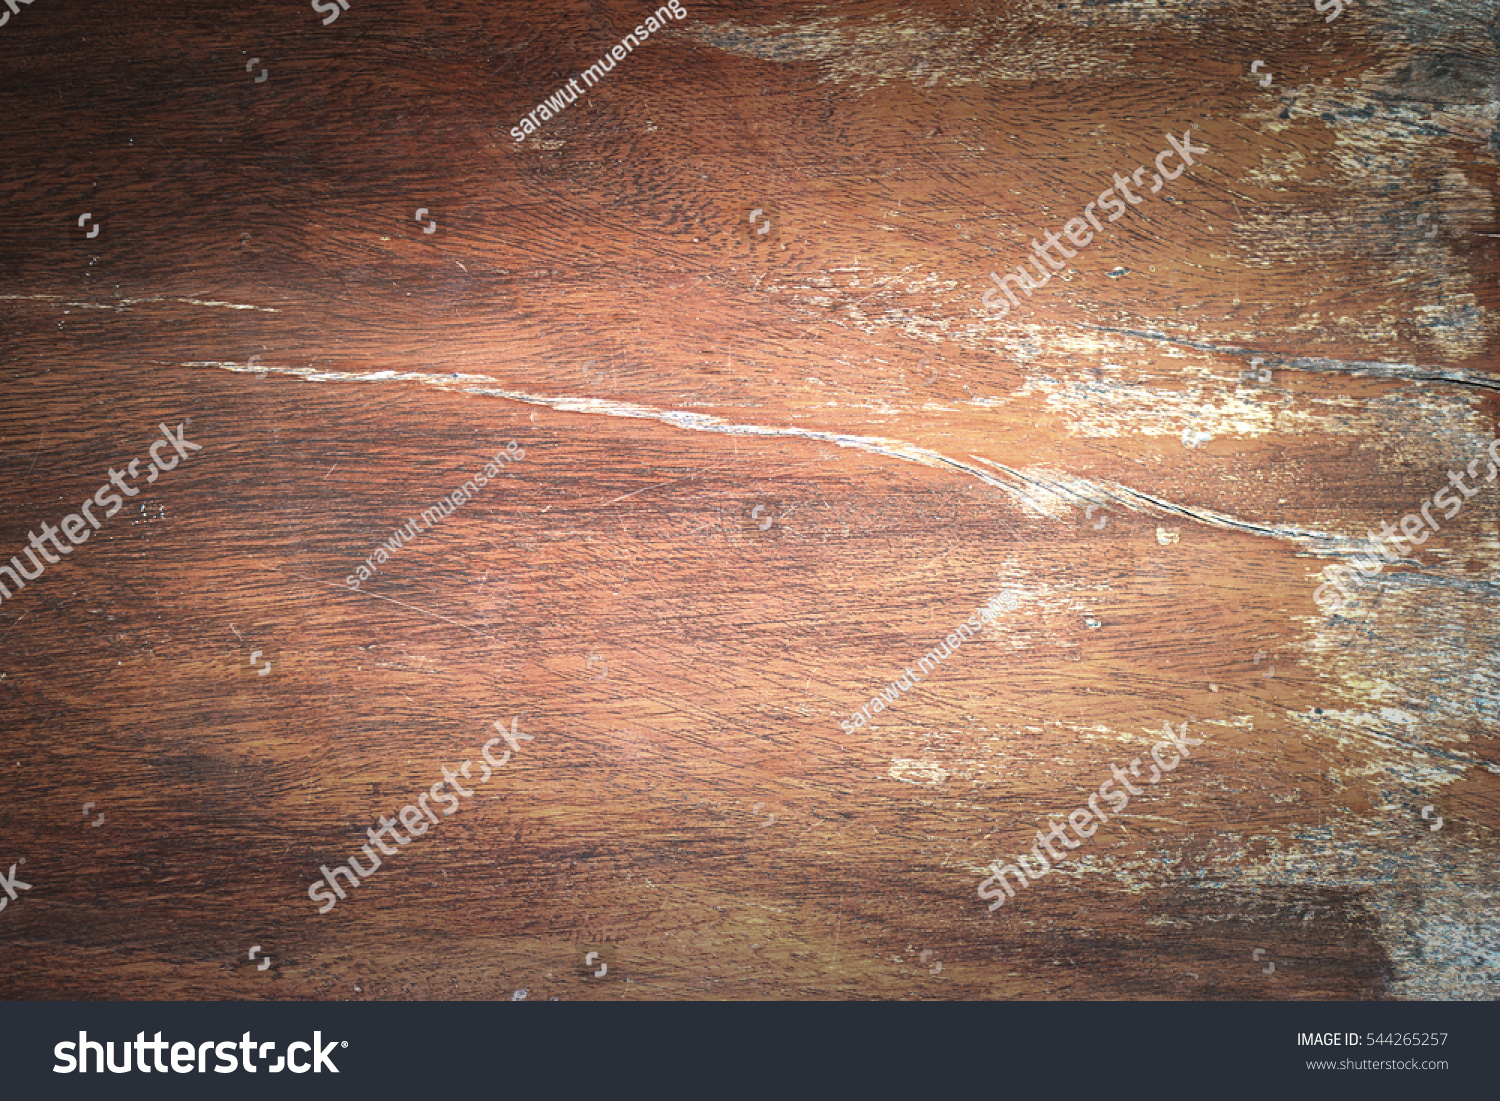 old wood texture floor surface stock photo 544265257 shutterstock. Black Bedroom Furniture Sets. Home Design Ideas